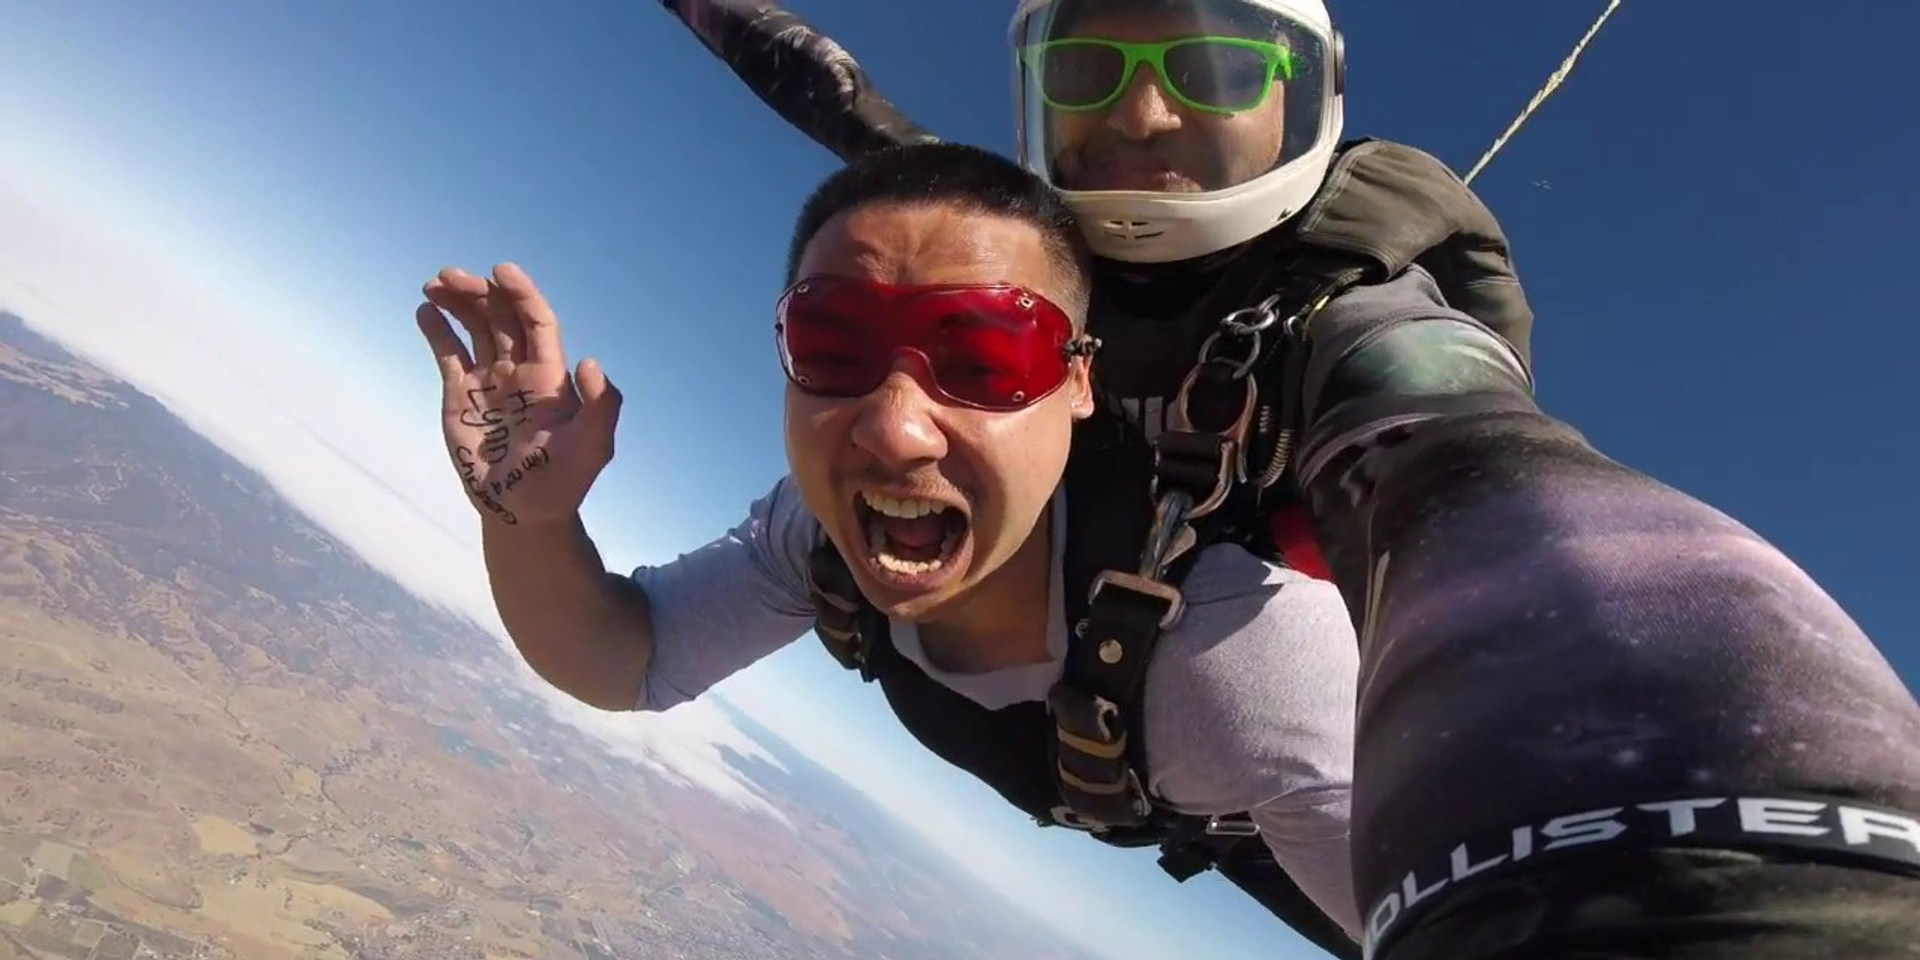 Skydive Hollister Jumps July 13 to 16 2018 | SF Bay Area Skydiving California | Tandem, Experienced, AFF